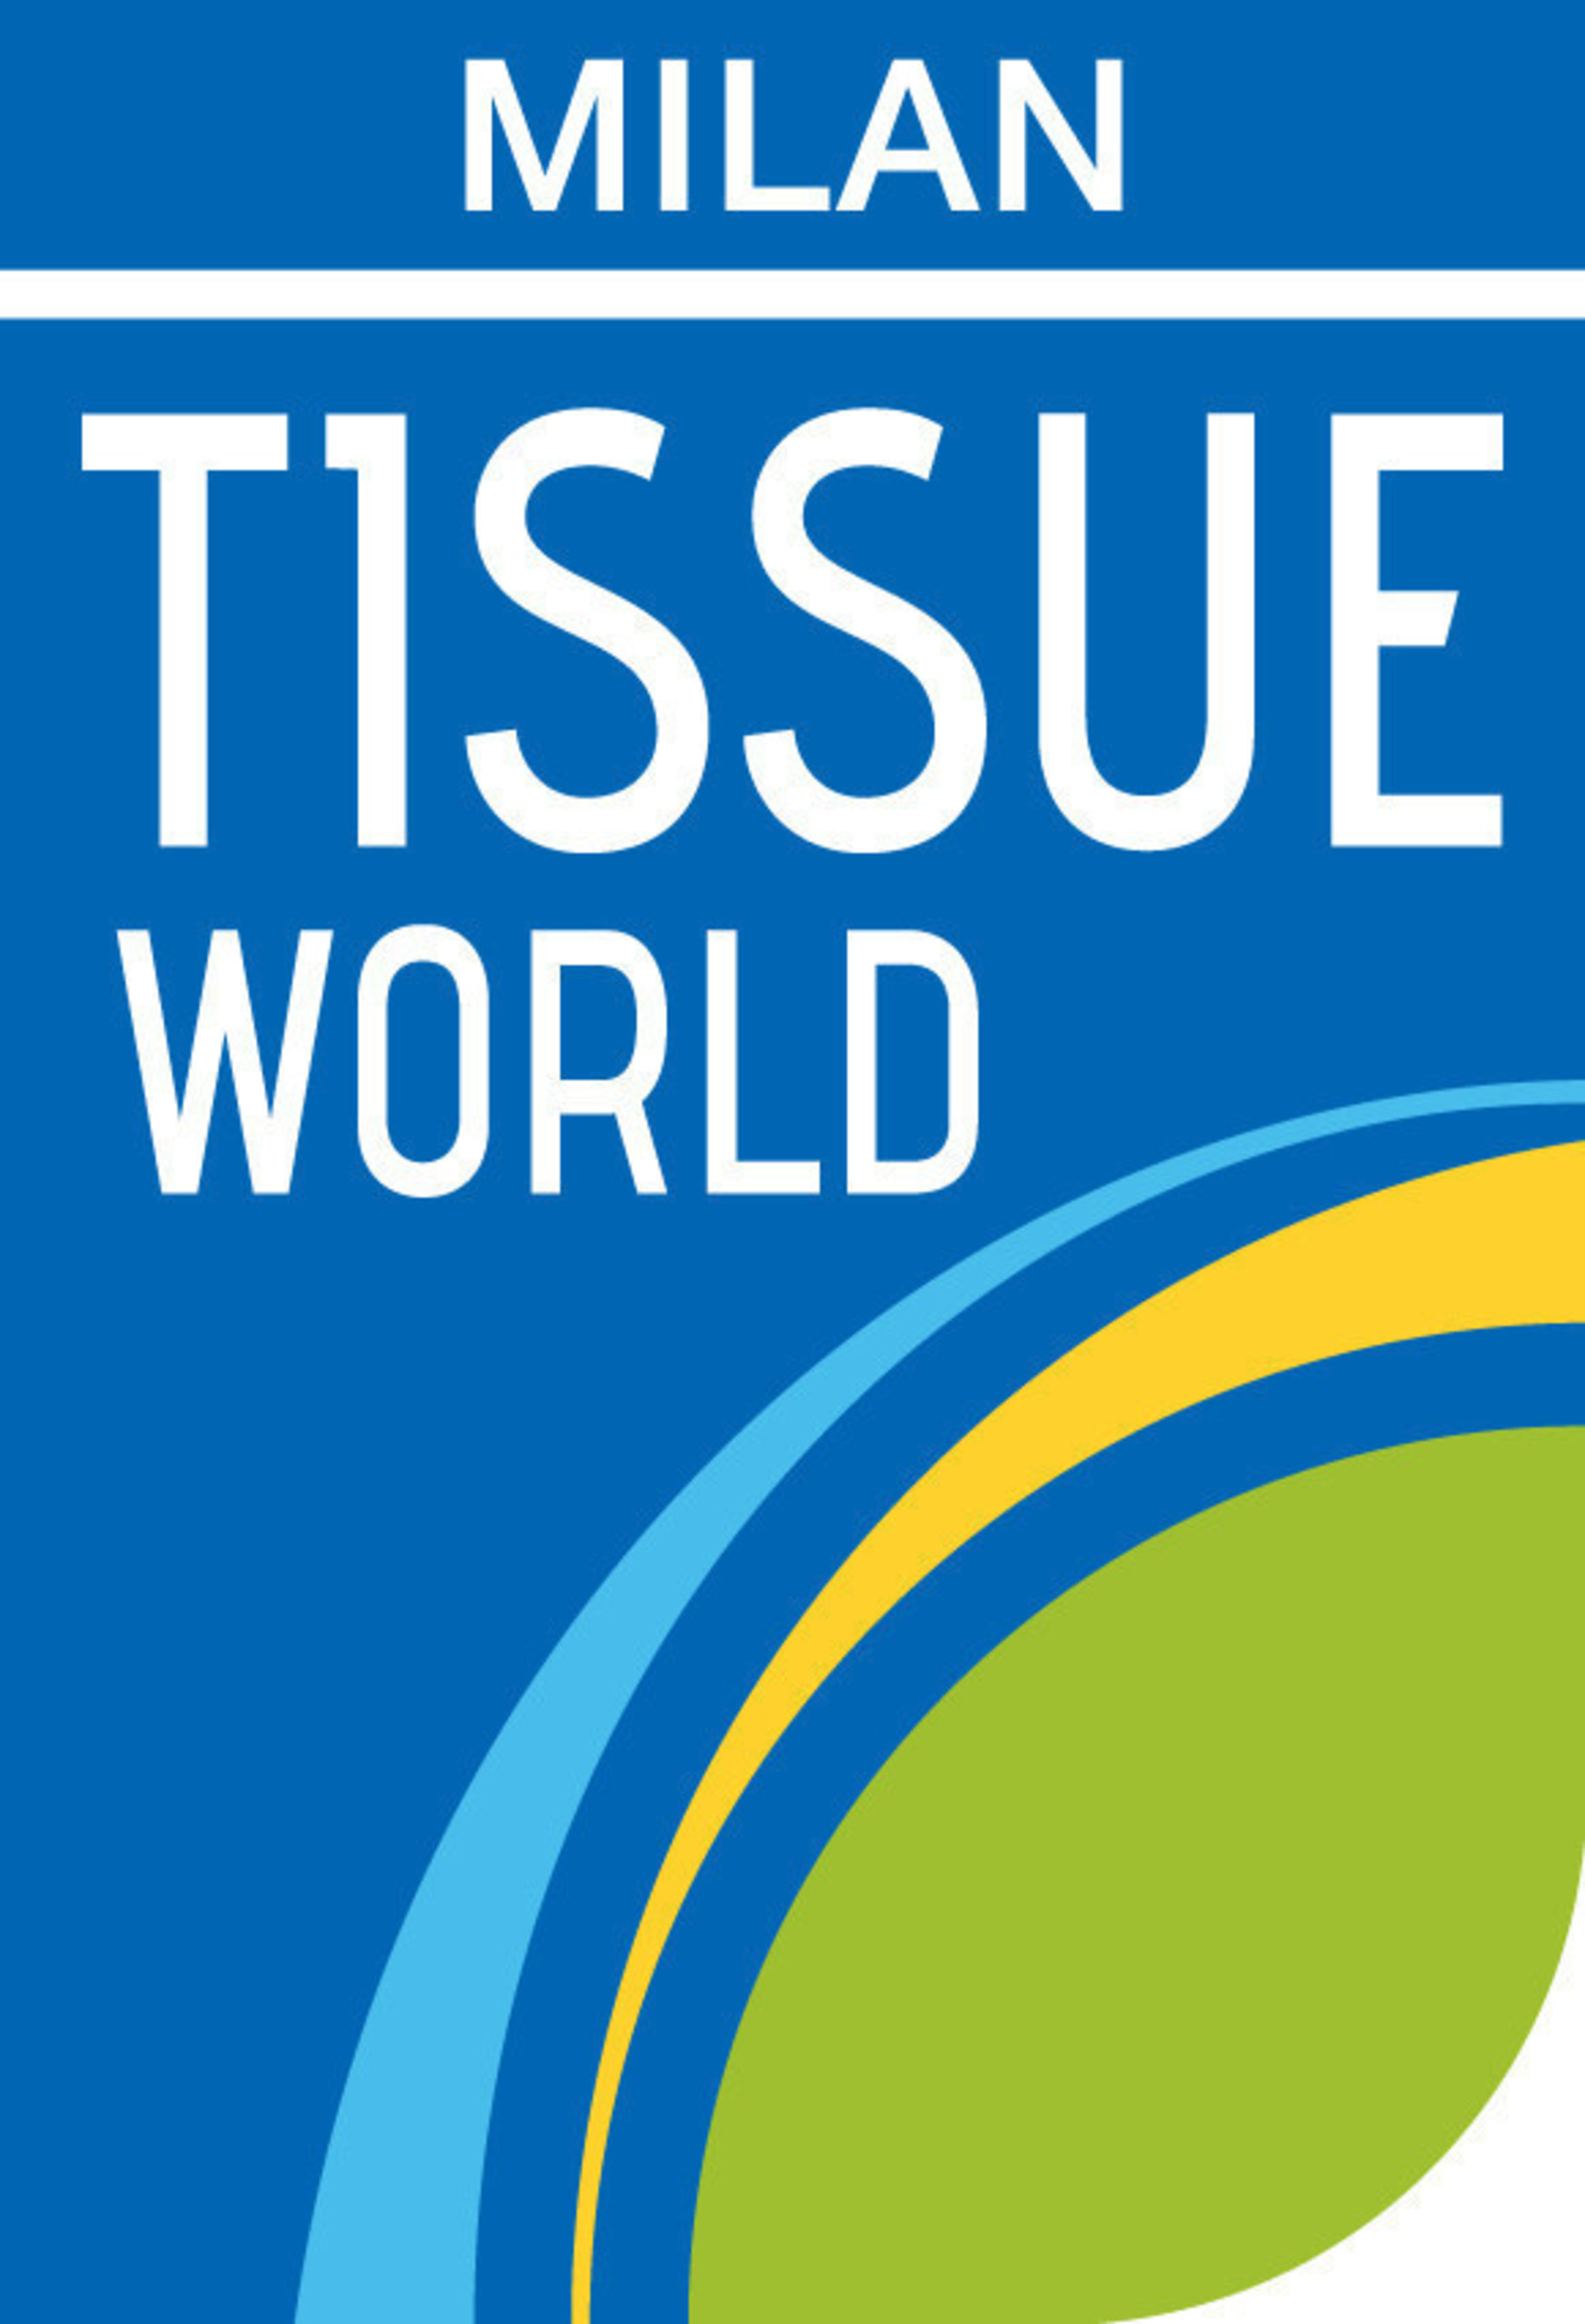 Tissue World Milan Logo